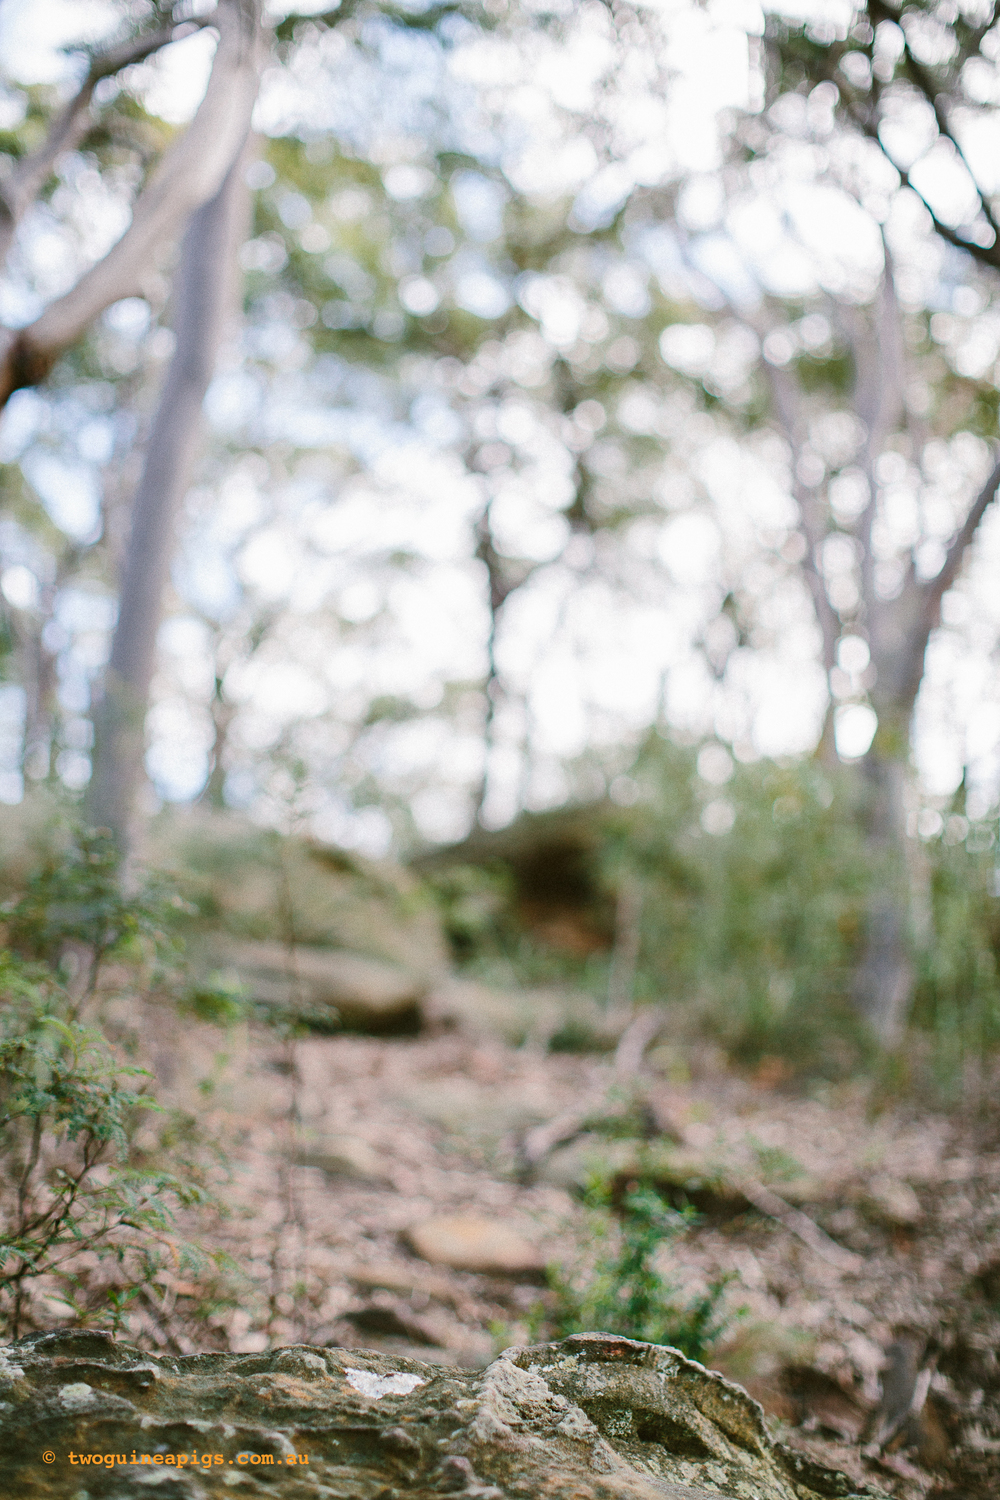 twoguineapigs_pet_photography_berry_island_reserve_wollstonecraft_location_scout_1500-33.jpg